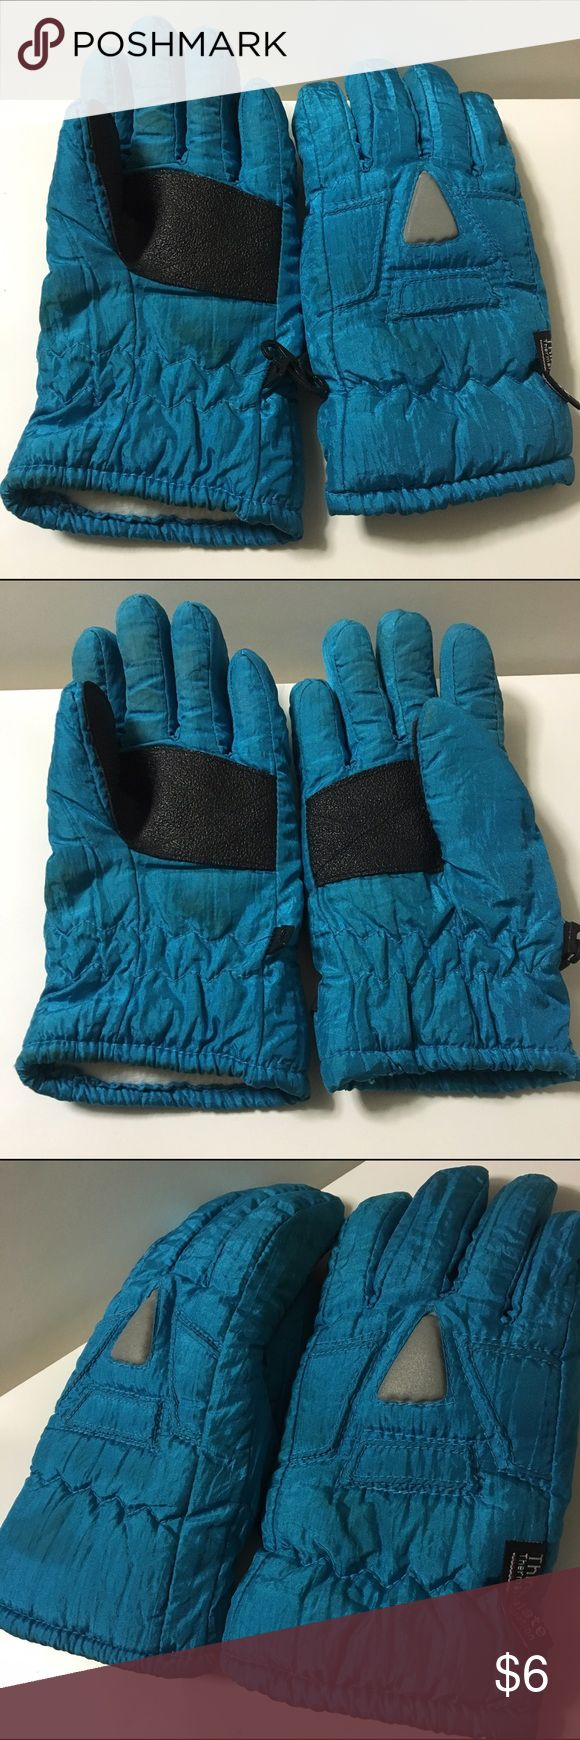 Blue Winter Gloves Blue Thinsulate Gloves for kids, keeps hands and fingers warm, perfect of winter, snow and trips to cold places. Used condition, as pictured, but doesn't effect it's comfort & protection. Can be attached for keeping together. Material on Palm provides a good grip. Unisex. Questions welcomed Accessories Mittens